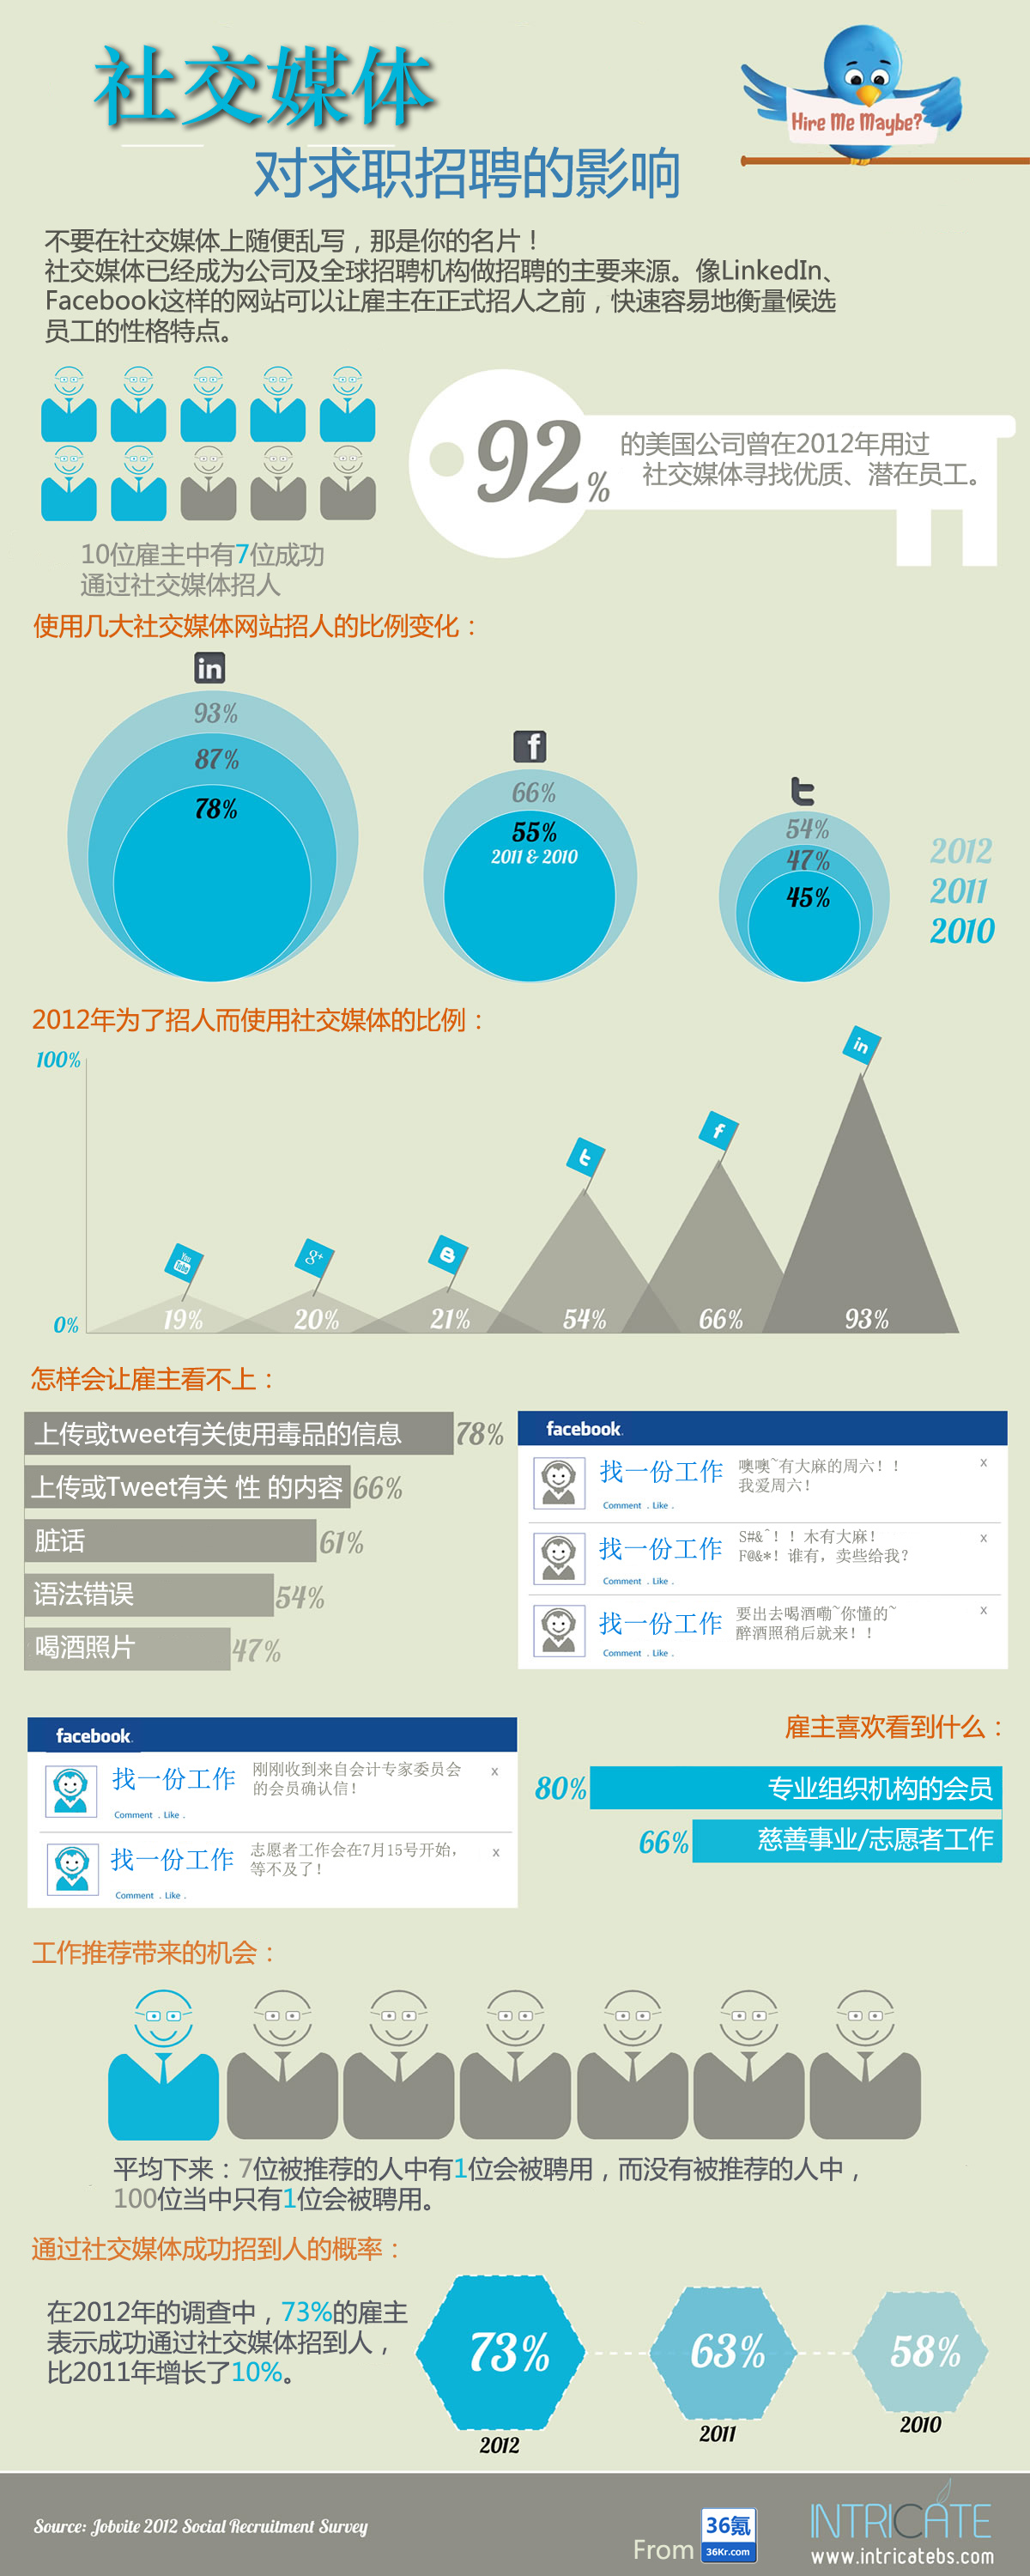 Social-Media-and-the-Effect-on-Recruitment-INFOGRAPHICccc